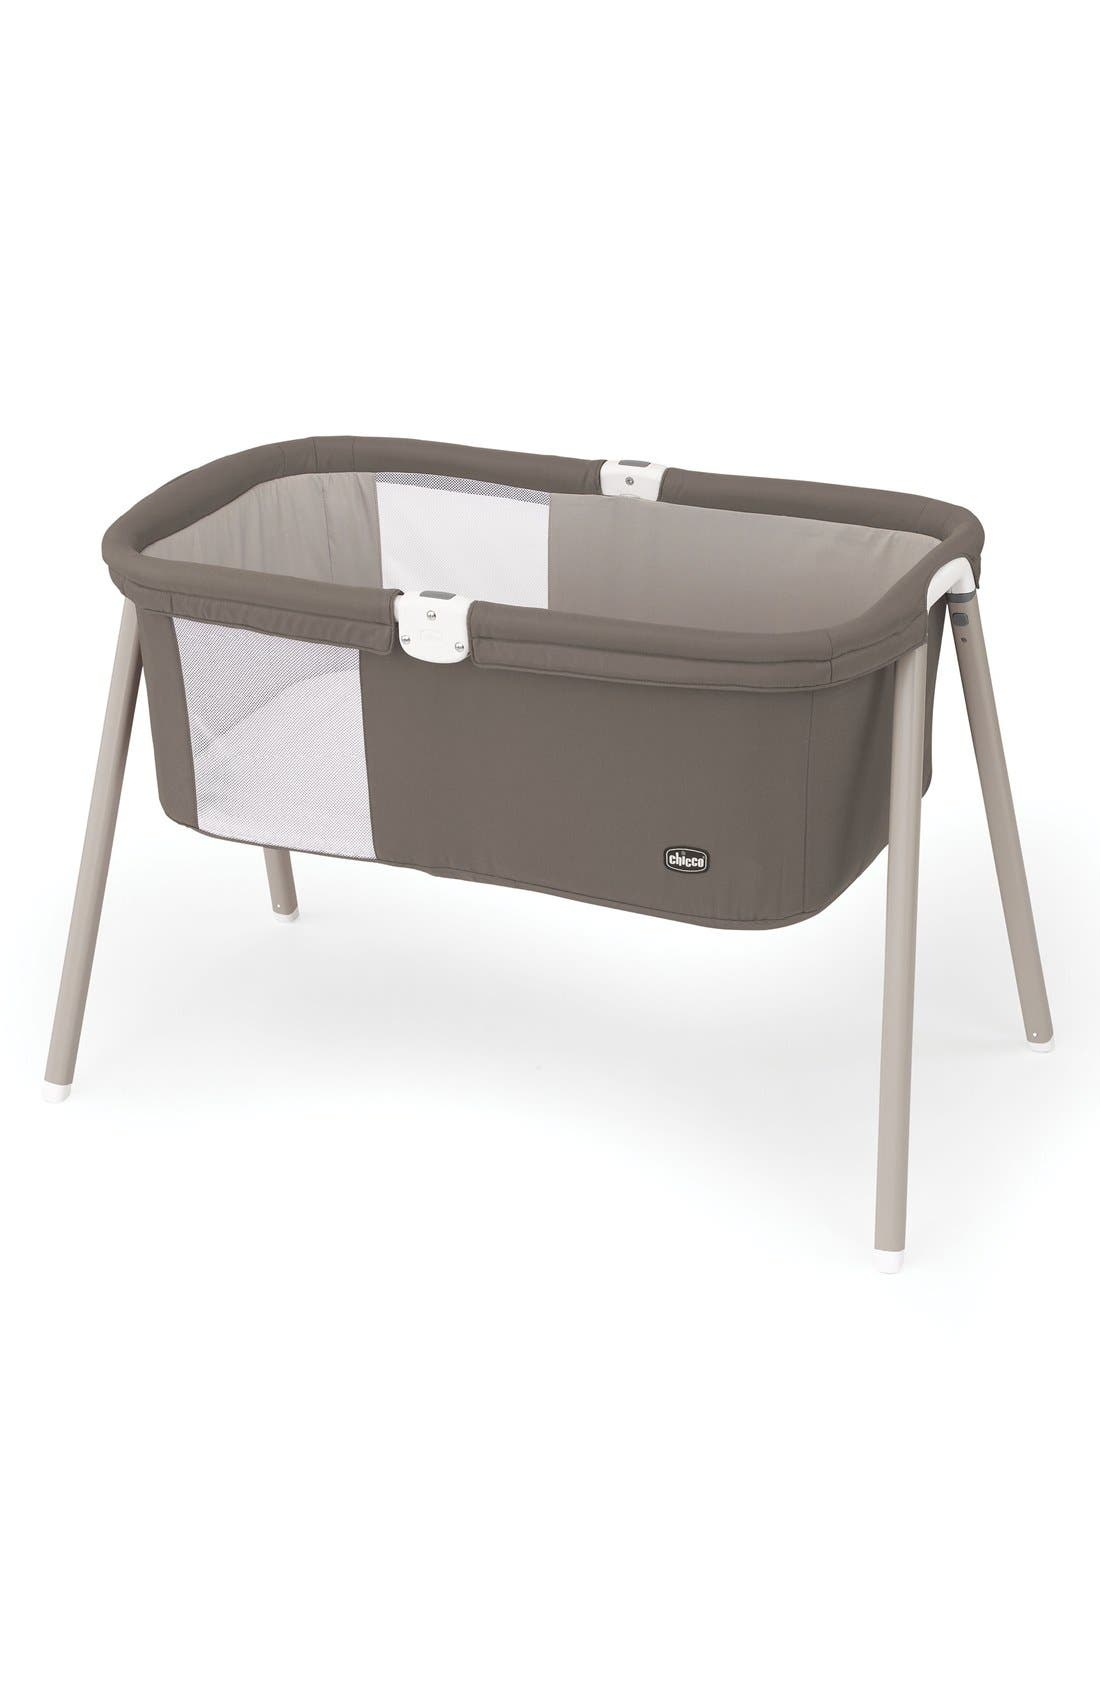 Alternate Image 1 Selected - Chicco 'LullaGo' Portable Bassinet